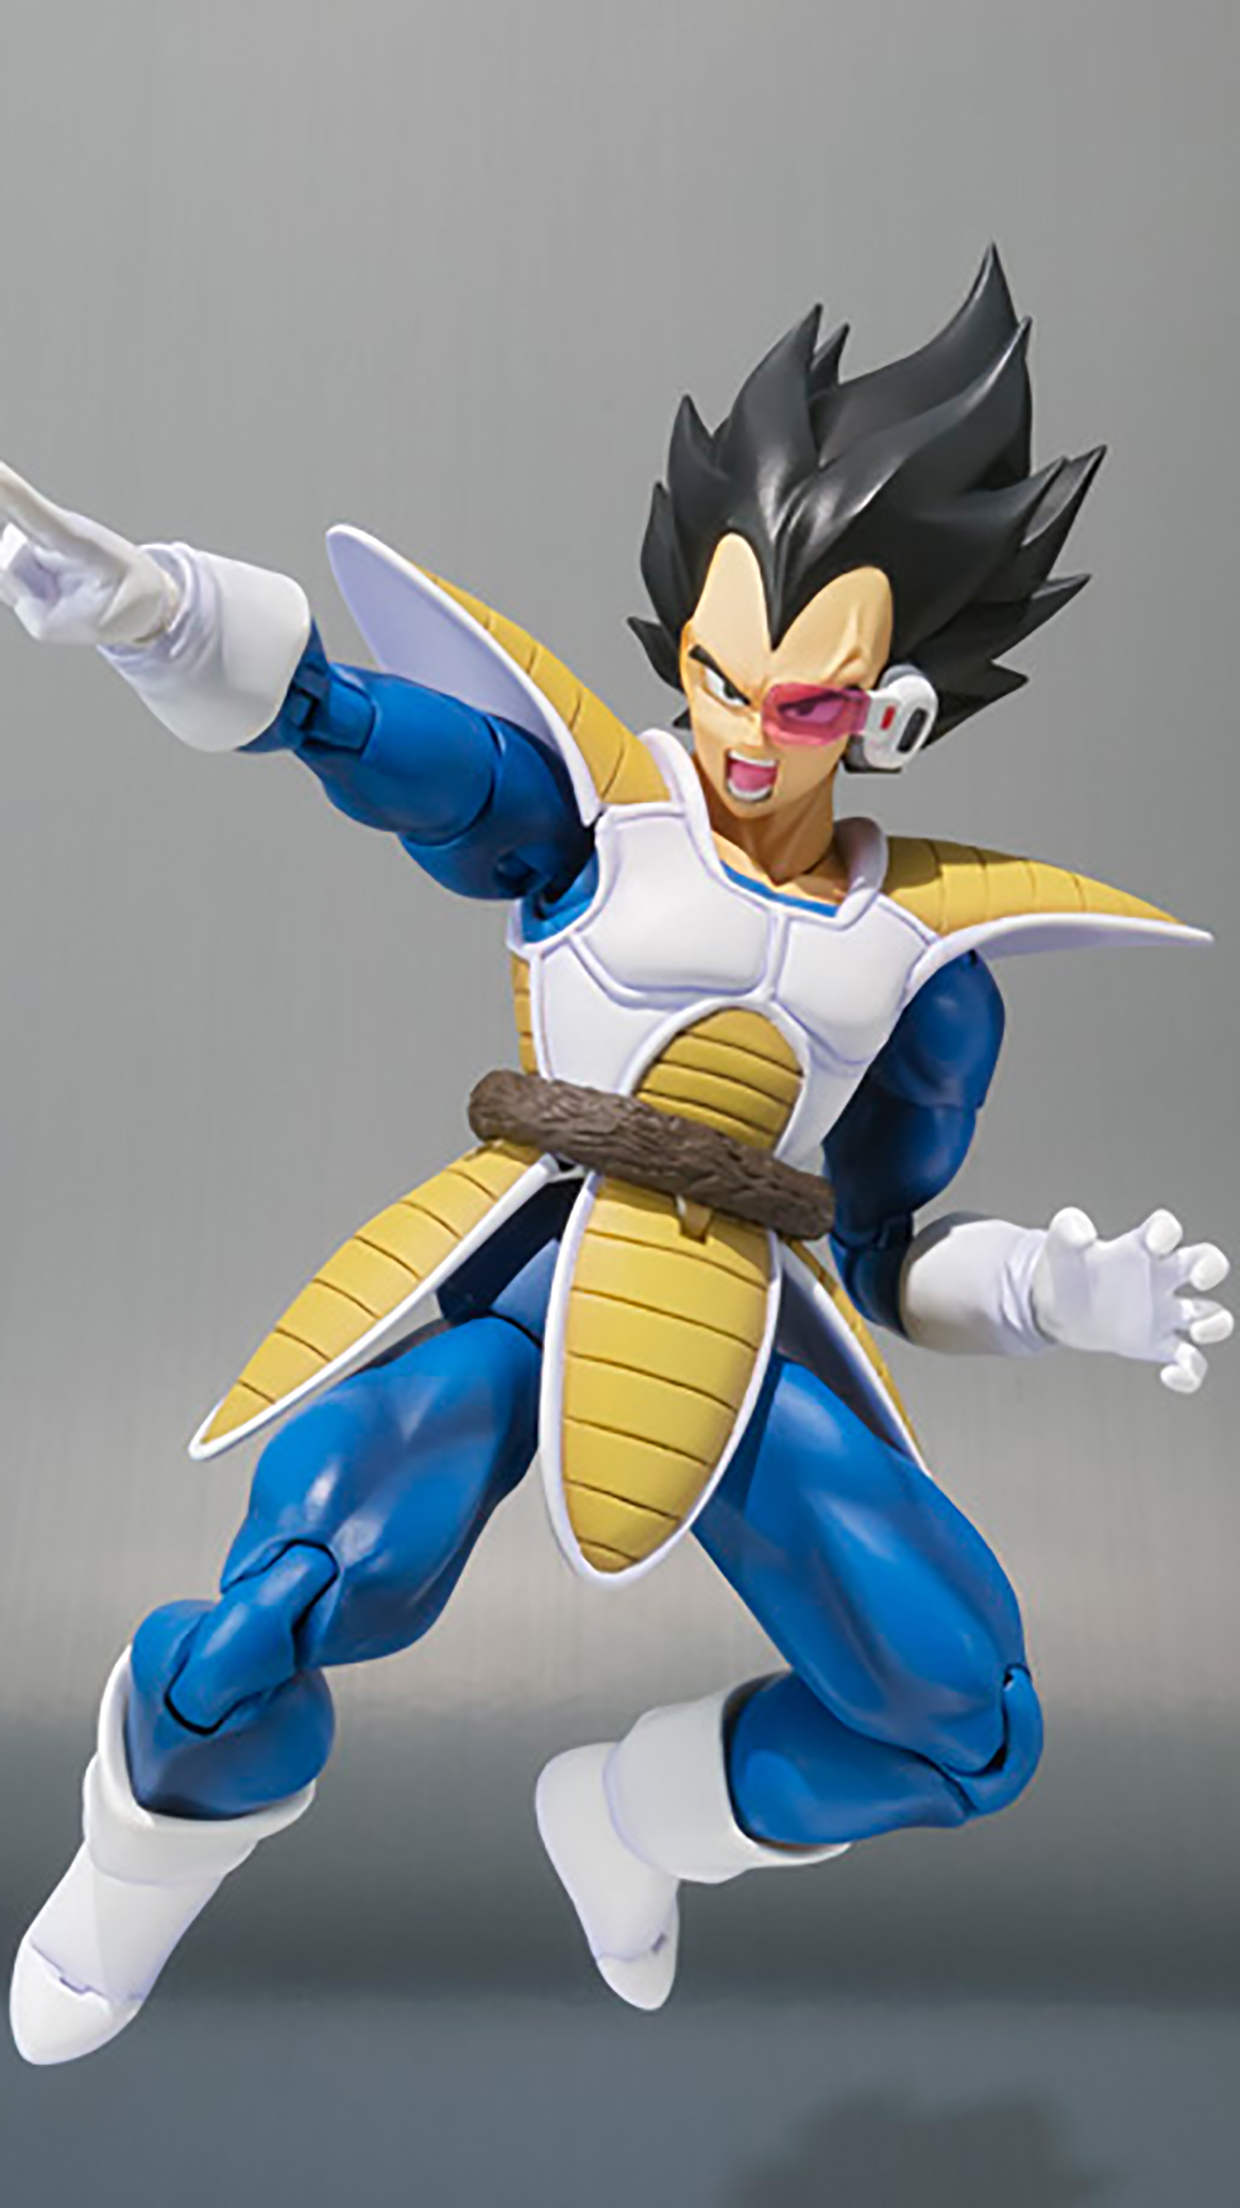 Special Vegeta Pumping 3Wallpapers iPhone Parallax Les 3Wallpapers iPhone du jour (24/01/2017)